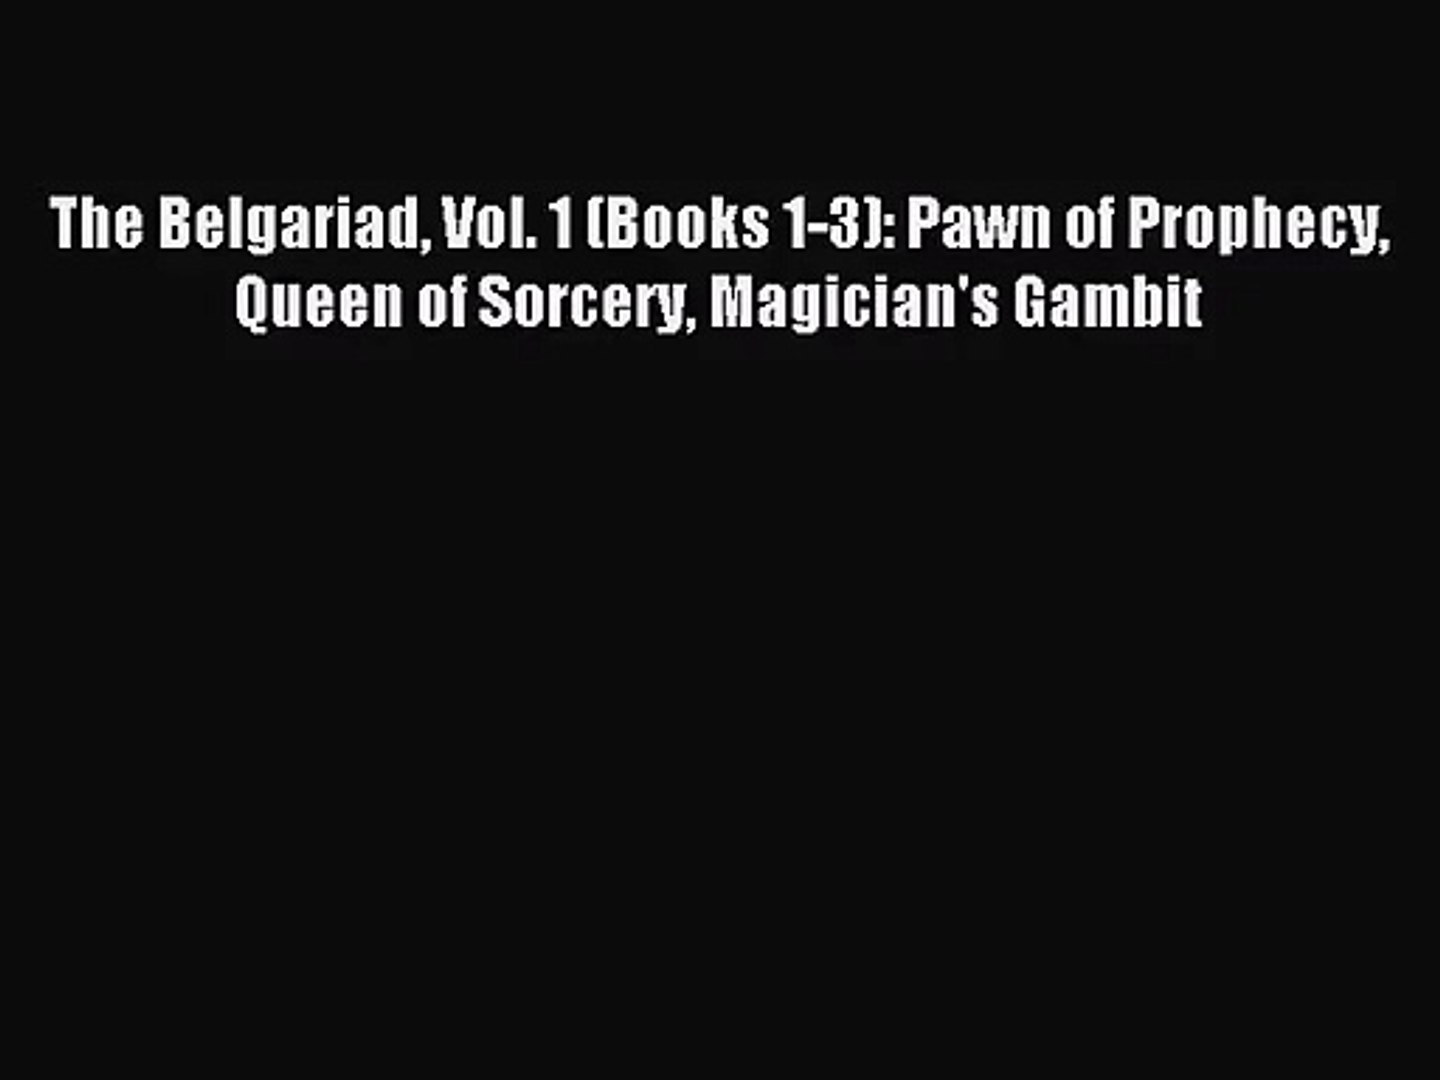 The Belgariad Volume 1 Vol 1